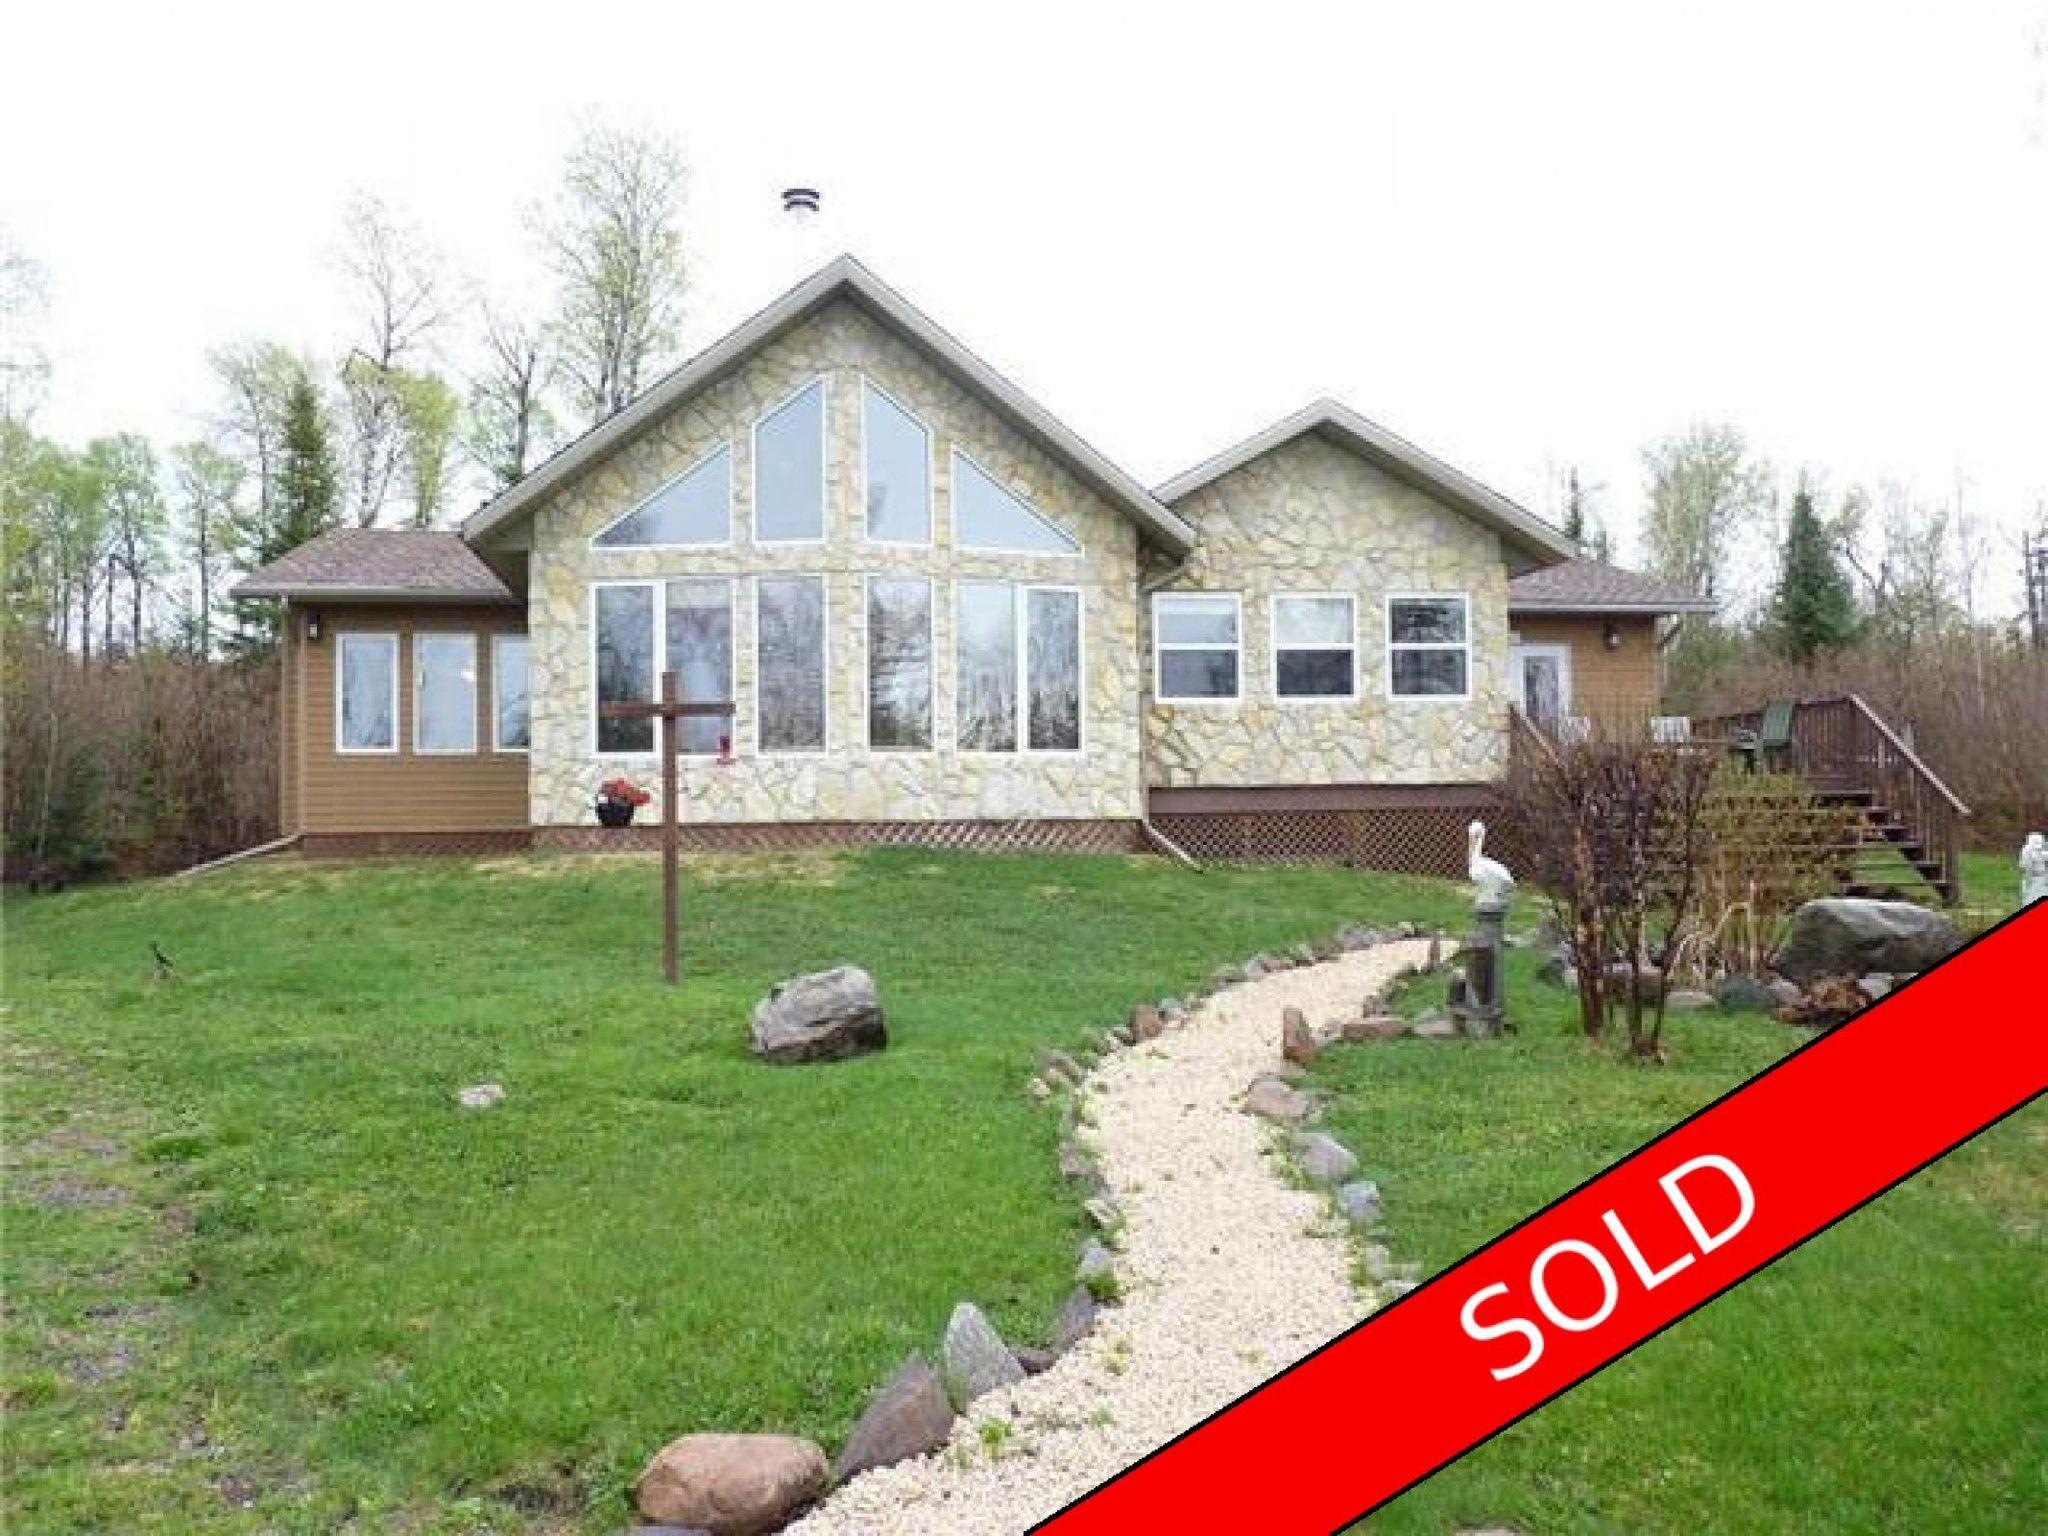 Main Photo: 32 Pelican Harbour Road in Manigotagan, MB R0E1E0: House for sale : MLS®# 1700926